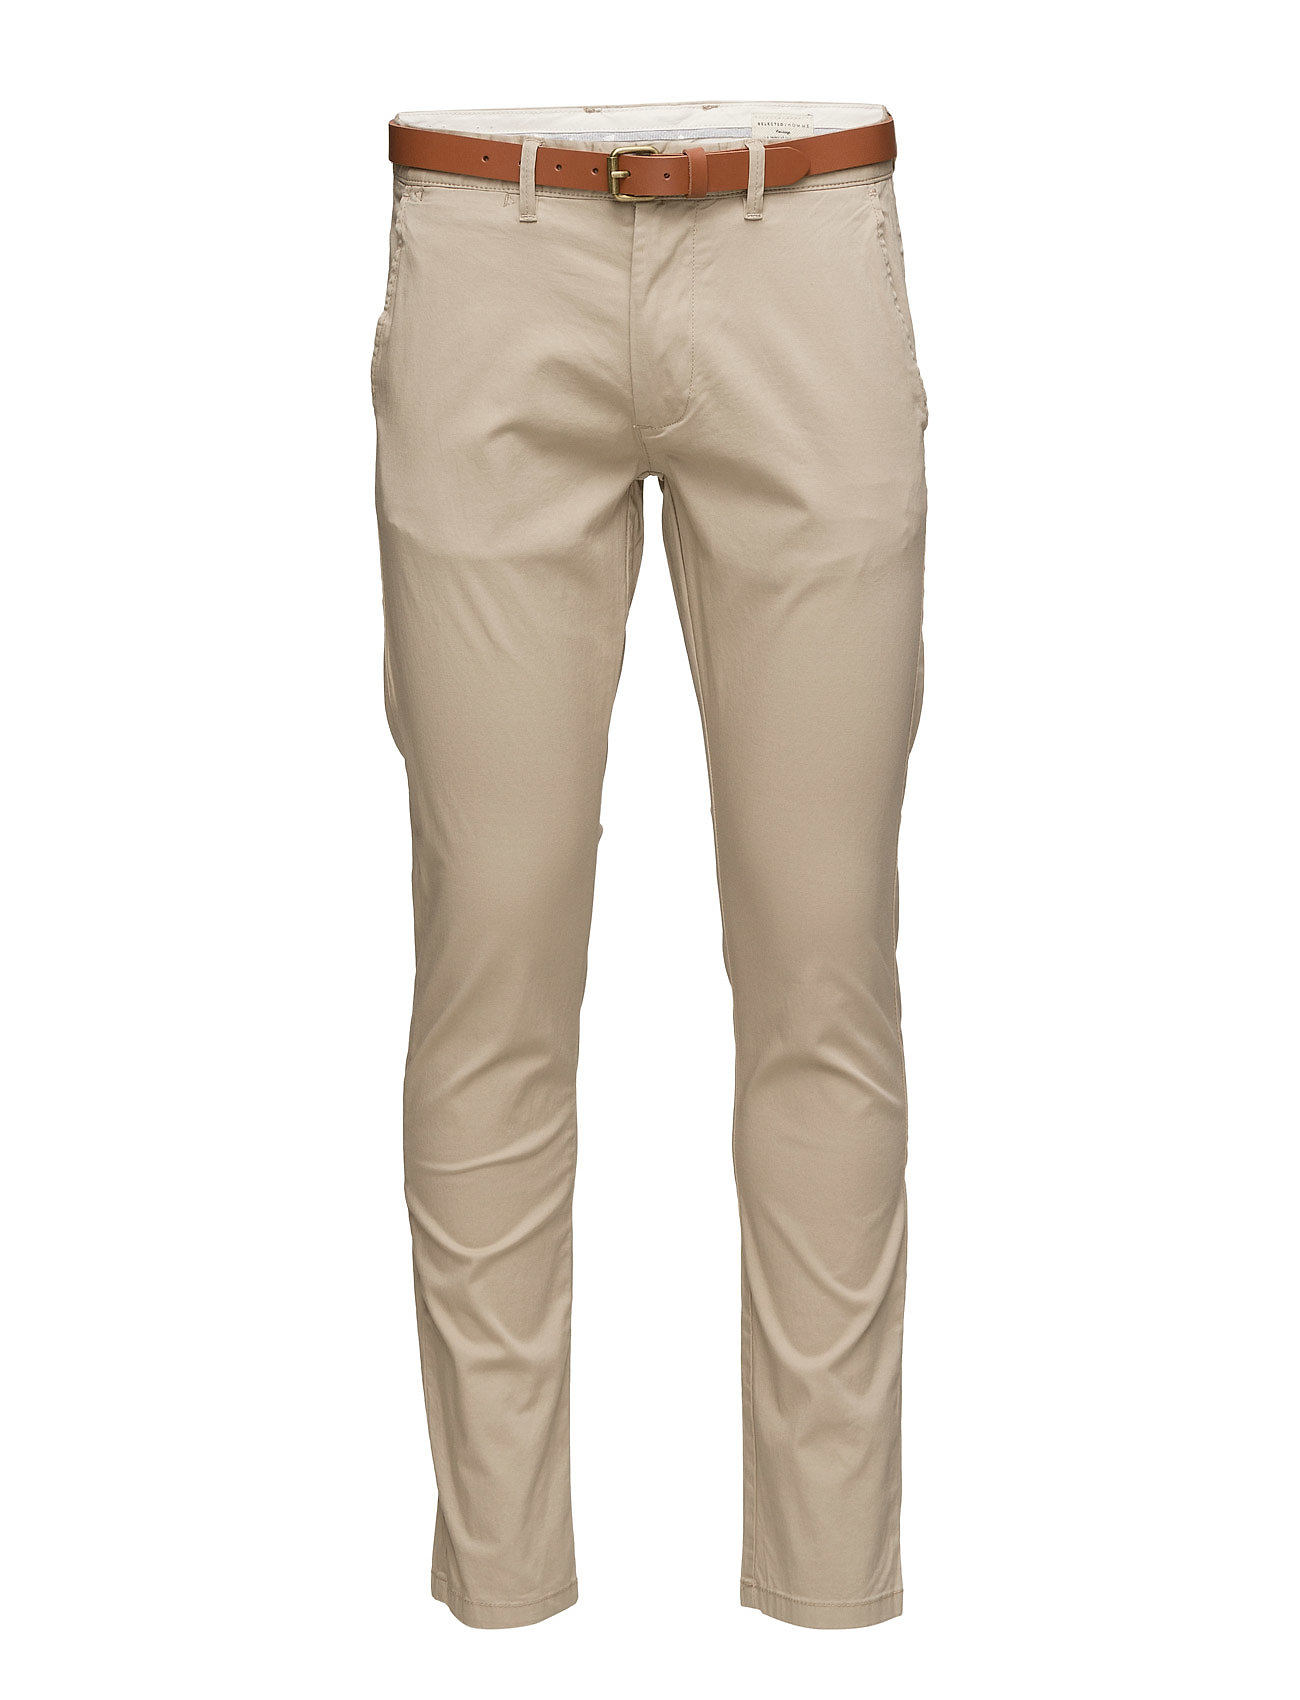 Selected Homme SLHSLIM-YARD WHITE PEPPER PANTS W NOOS - WHITE PEPPER